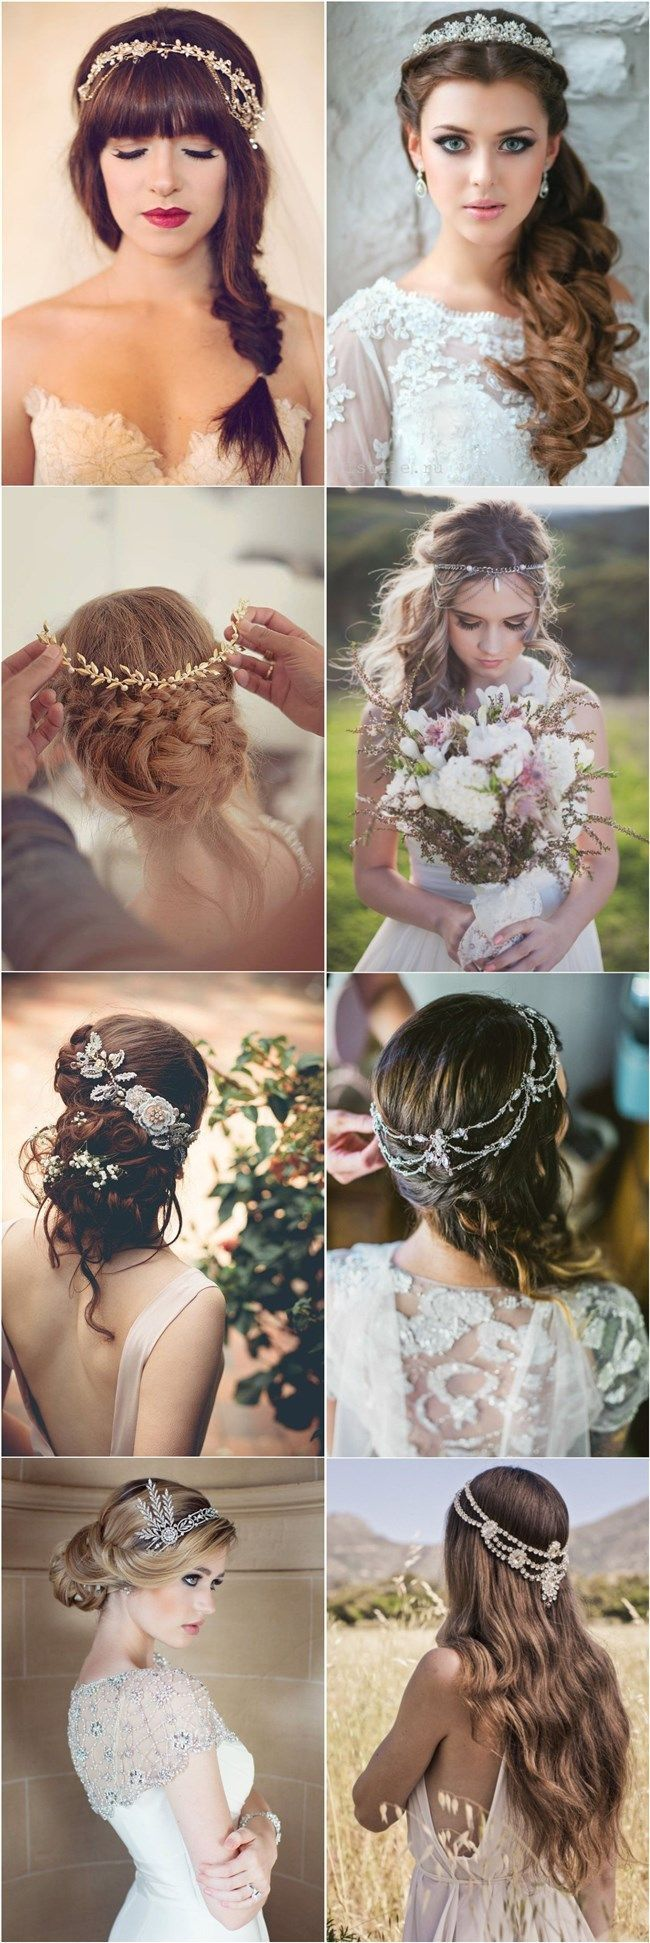 wedding hairstyles with wedding bridal headpieces: